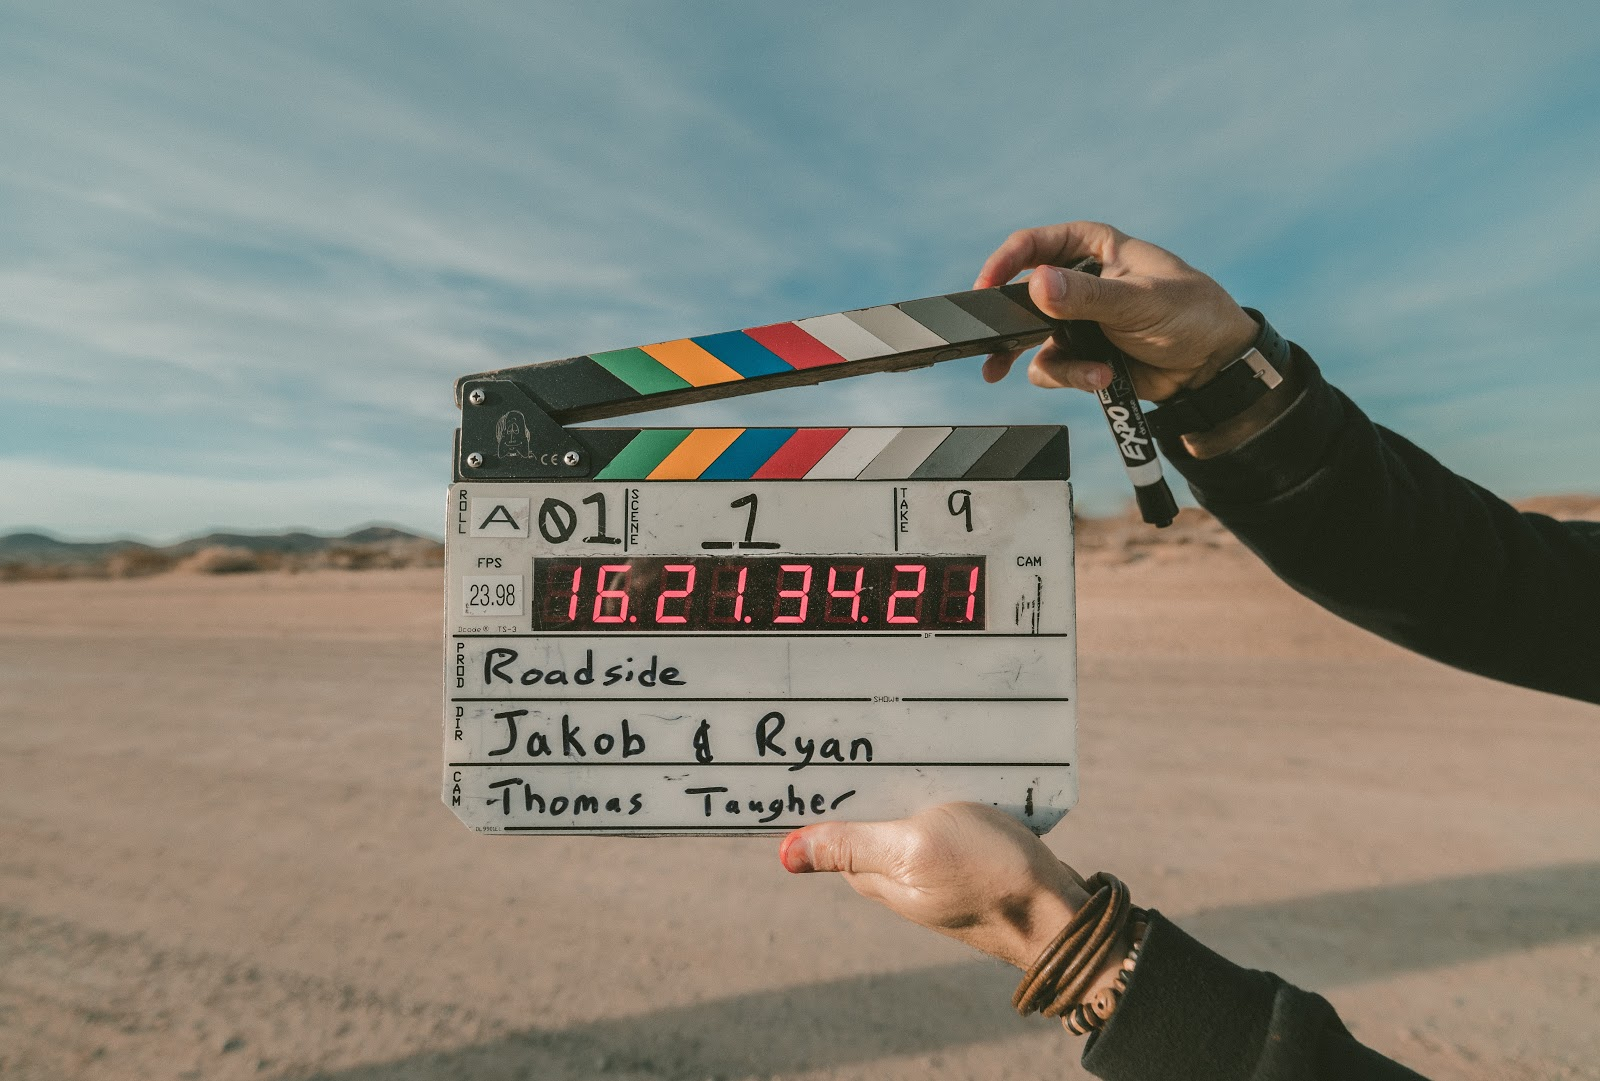 A set of hands is holding a movie clapperboard in front of an empty desert scene.